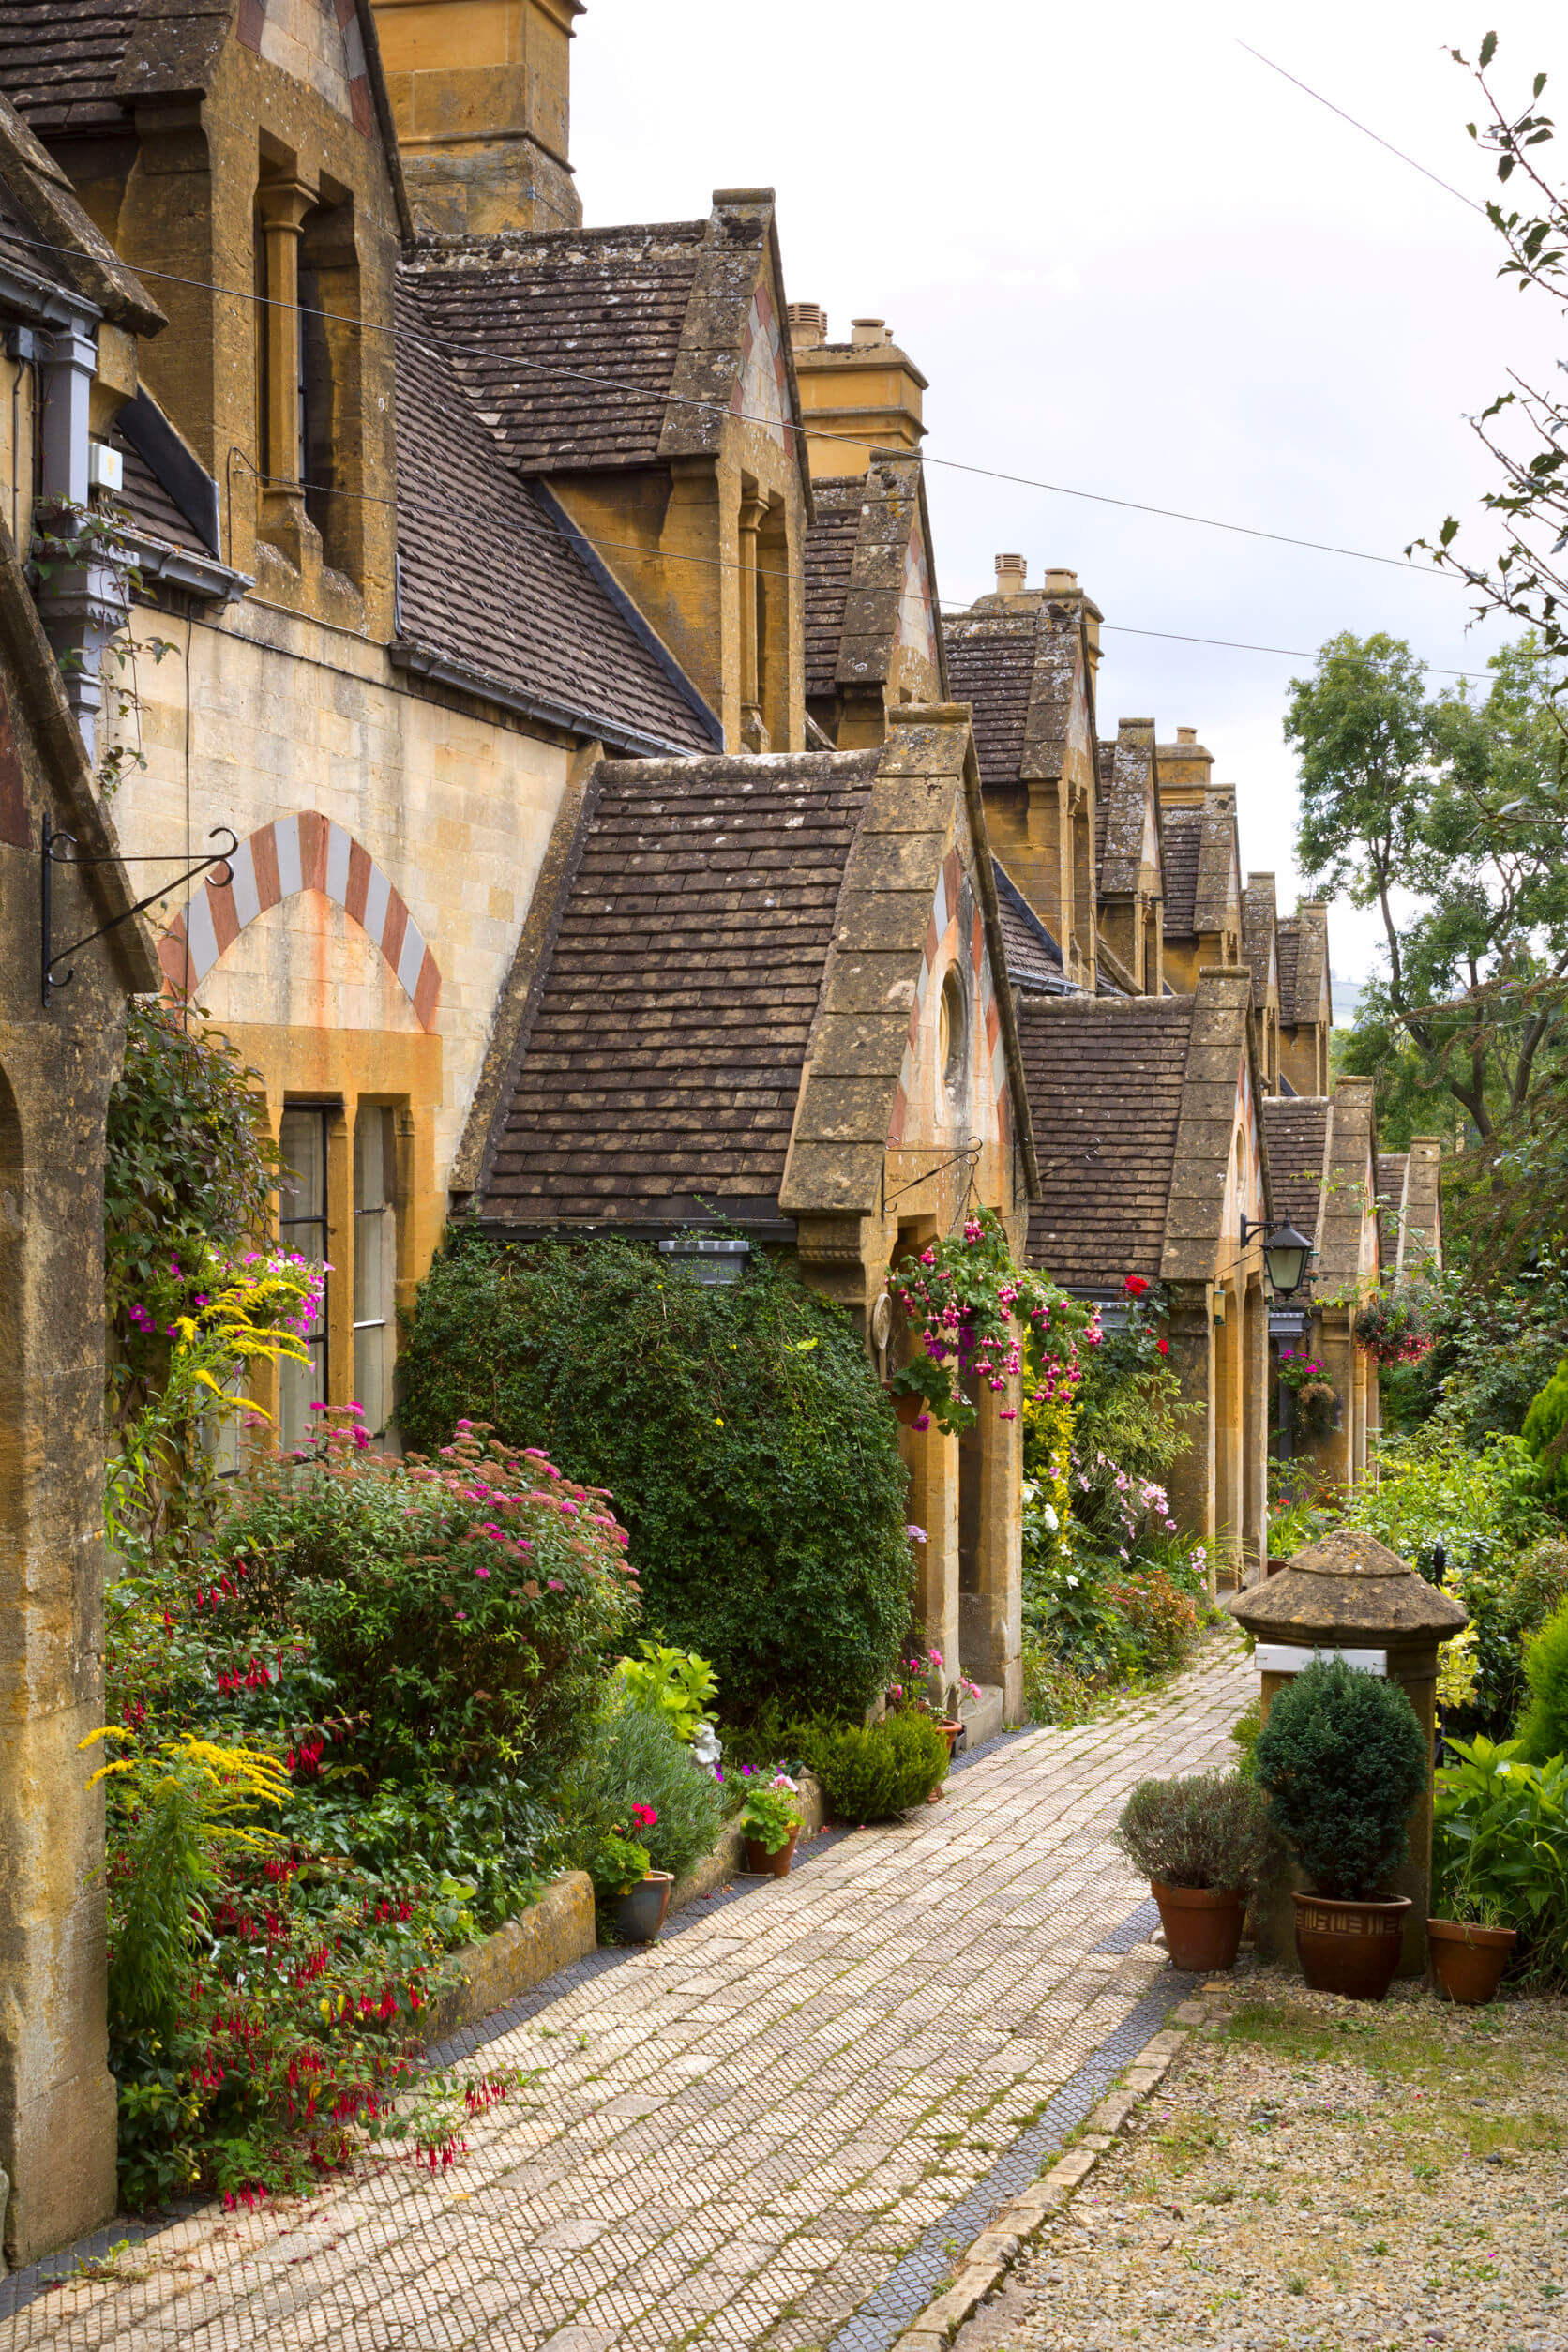 A row of picturesque Cotswold cottages in Winchcombe, Gloucestershire, UK.